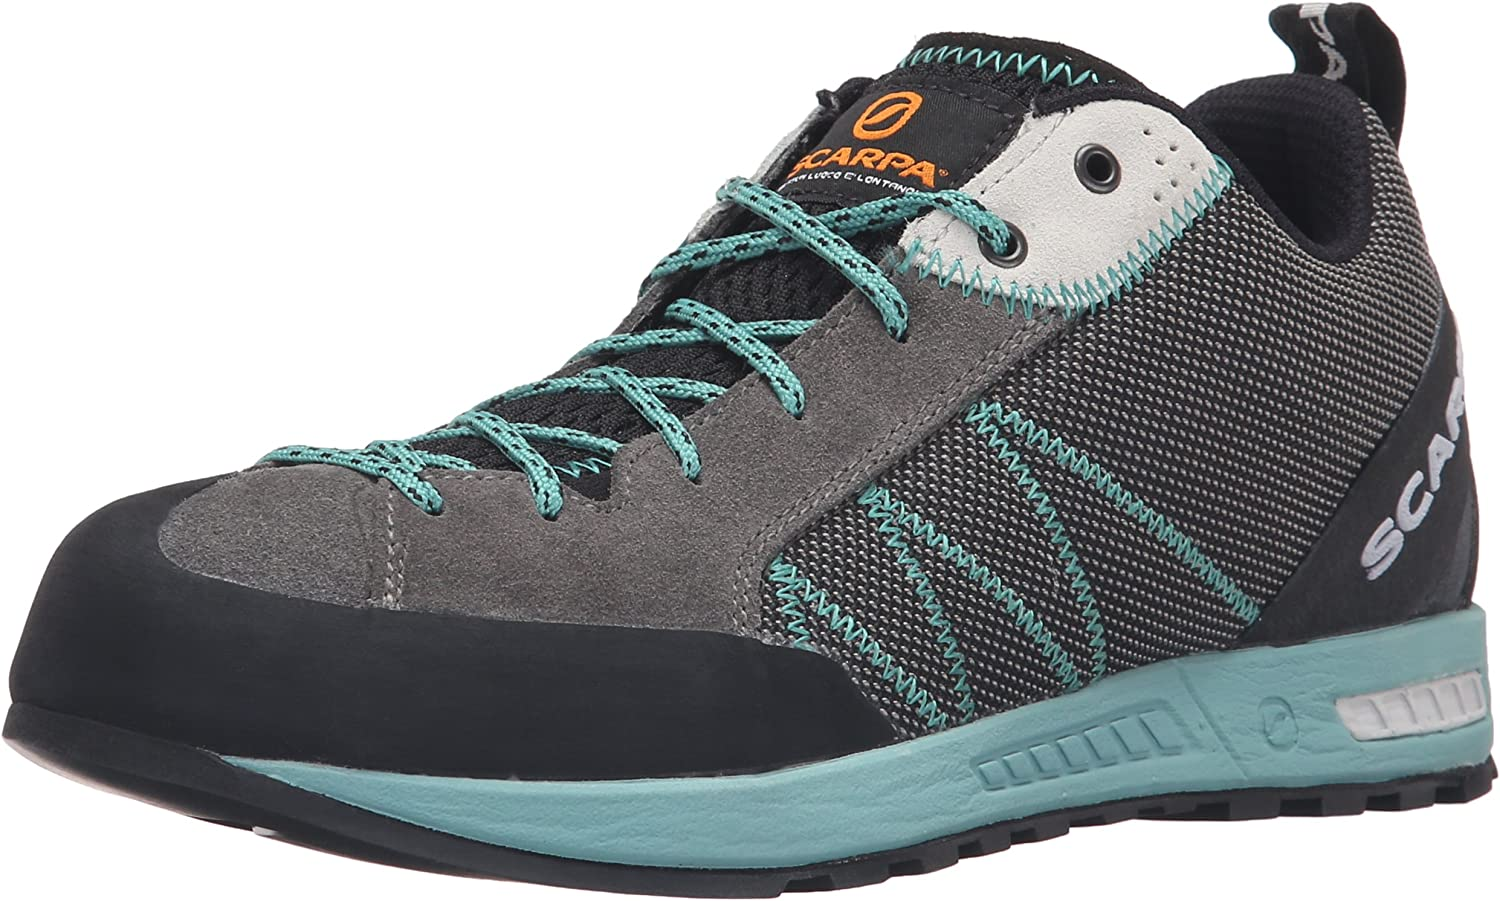 Scarpa Women's Gecko Lite Approach shoes